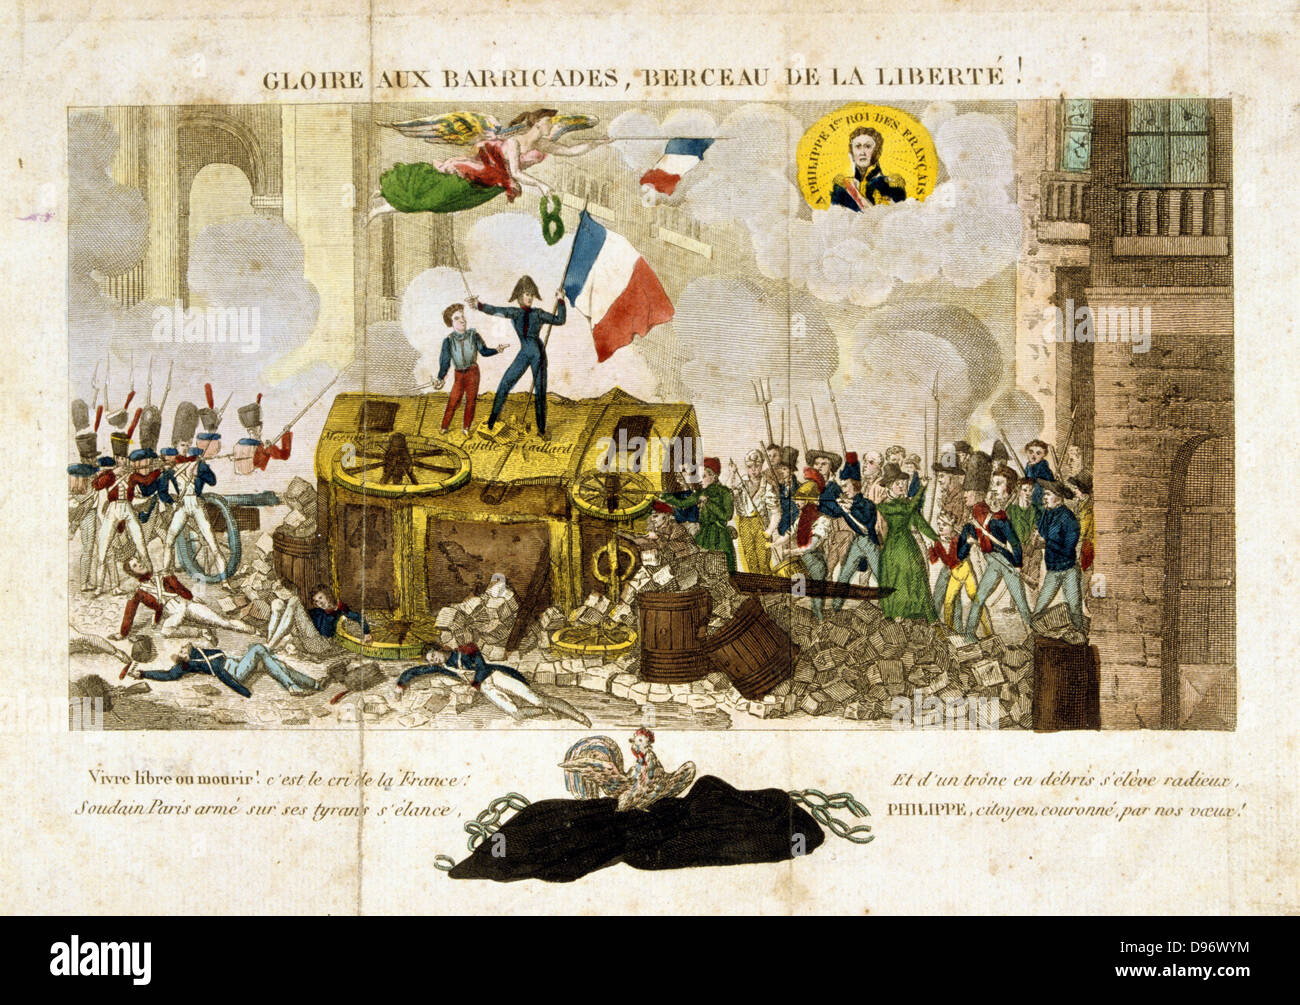 Revolution in France, 1830: Uprising in Paris 27, 28 and 30 July. 'Glory to  the Barricades, Cradle of Liberty!' Allegorical